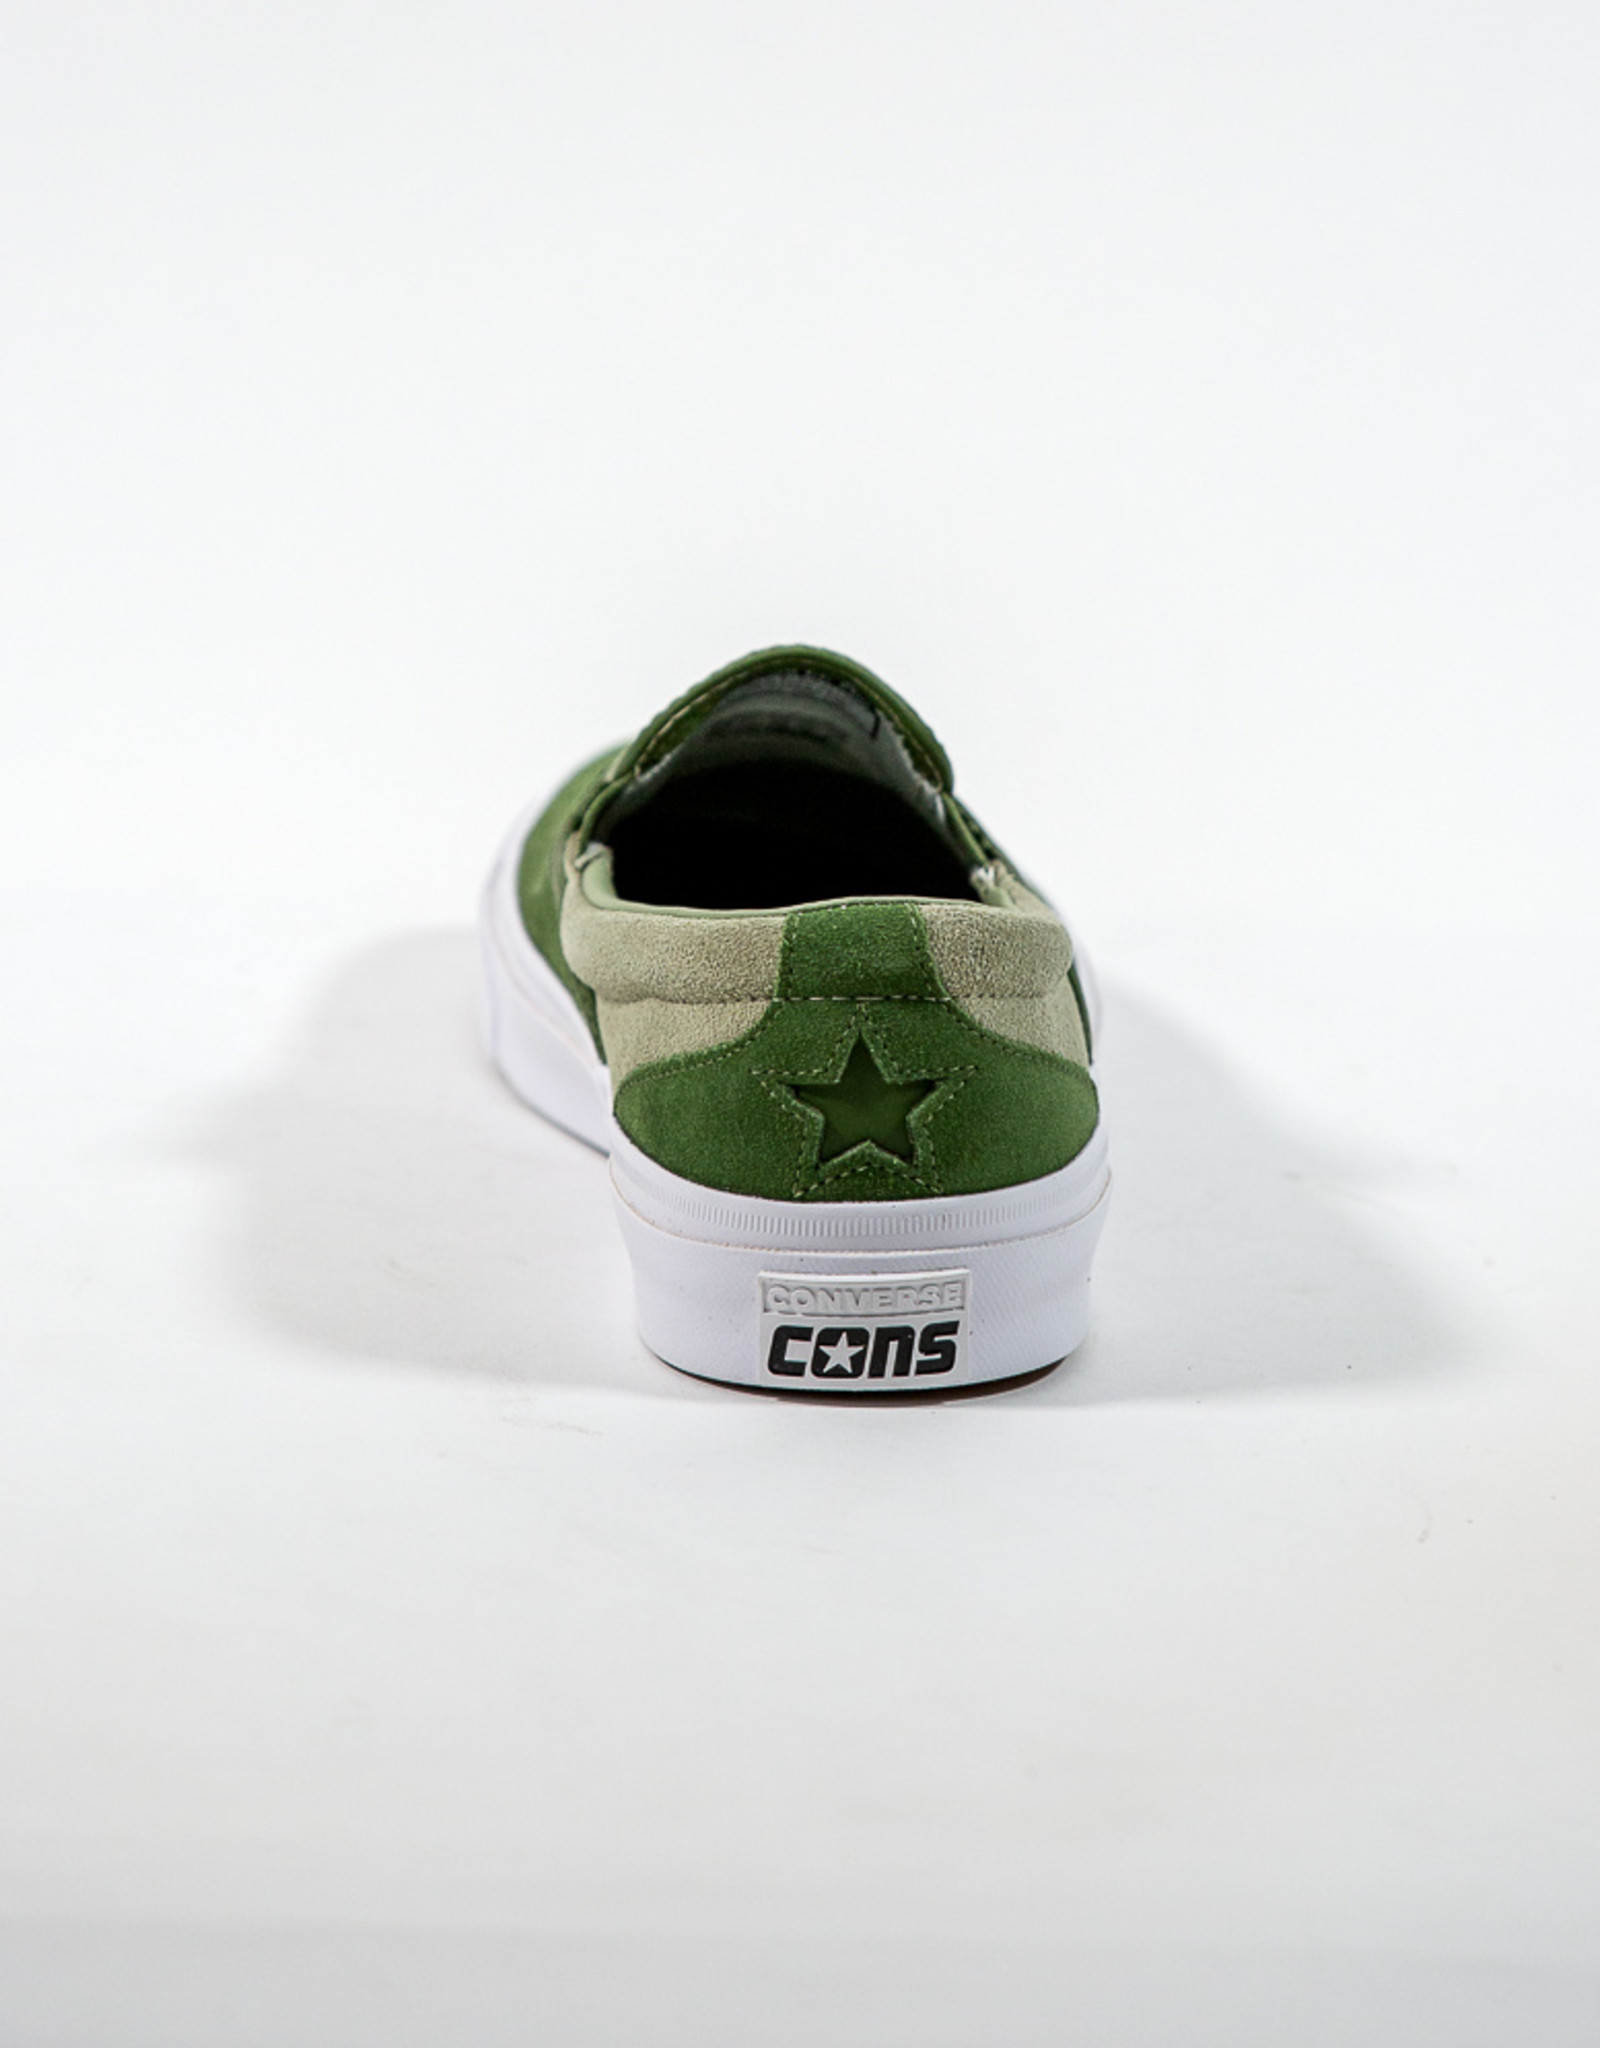 CONVERSE CONVERSE CONS ONE STAR CC SLIP PRO - CYPRESS GREEN/STREET SAGE